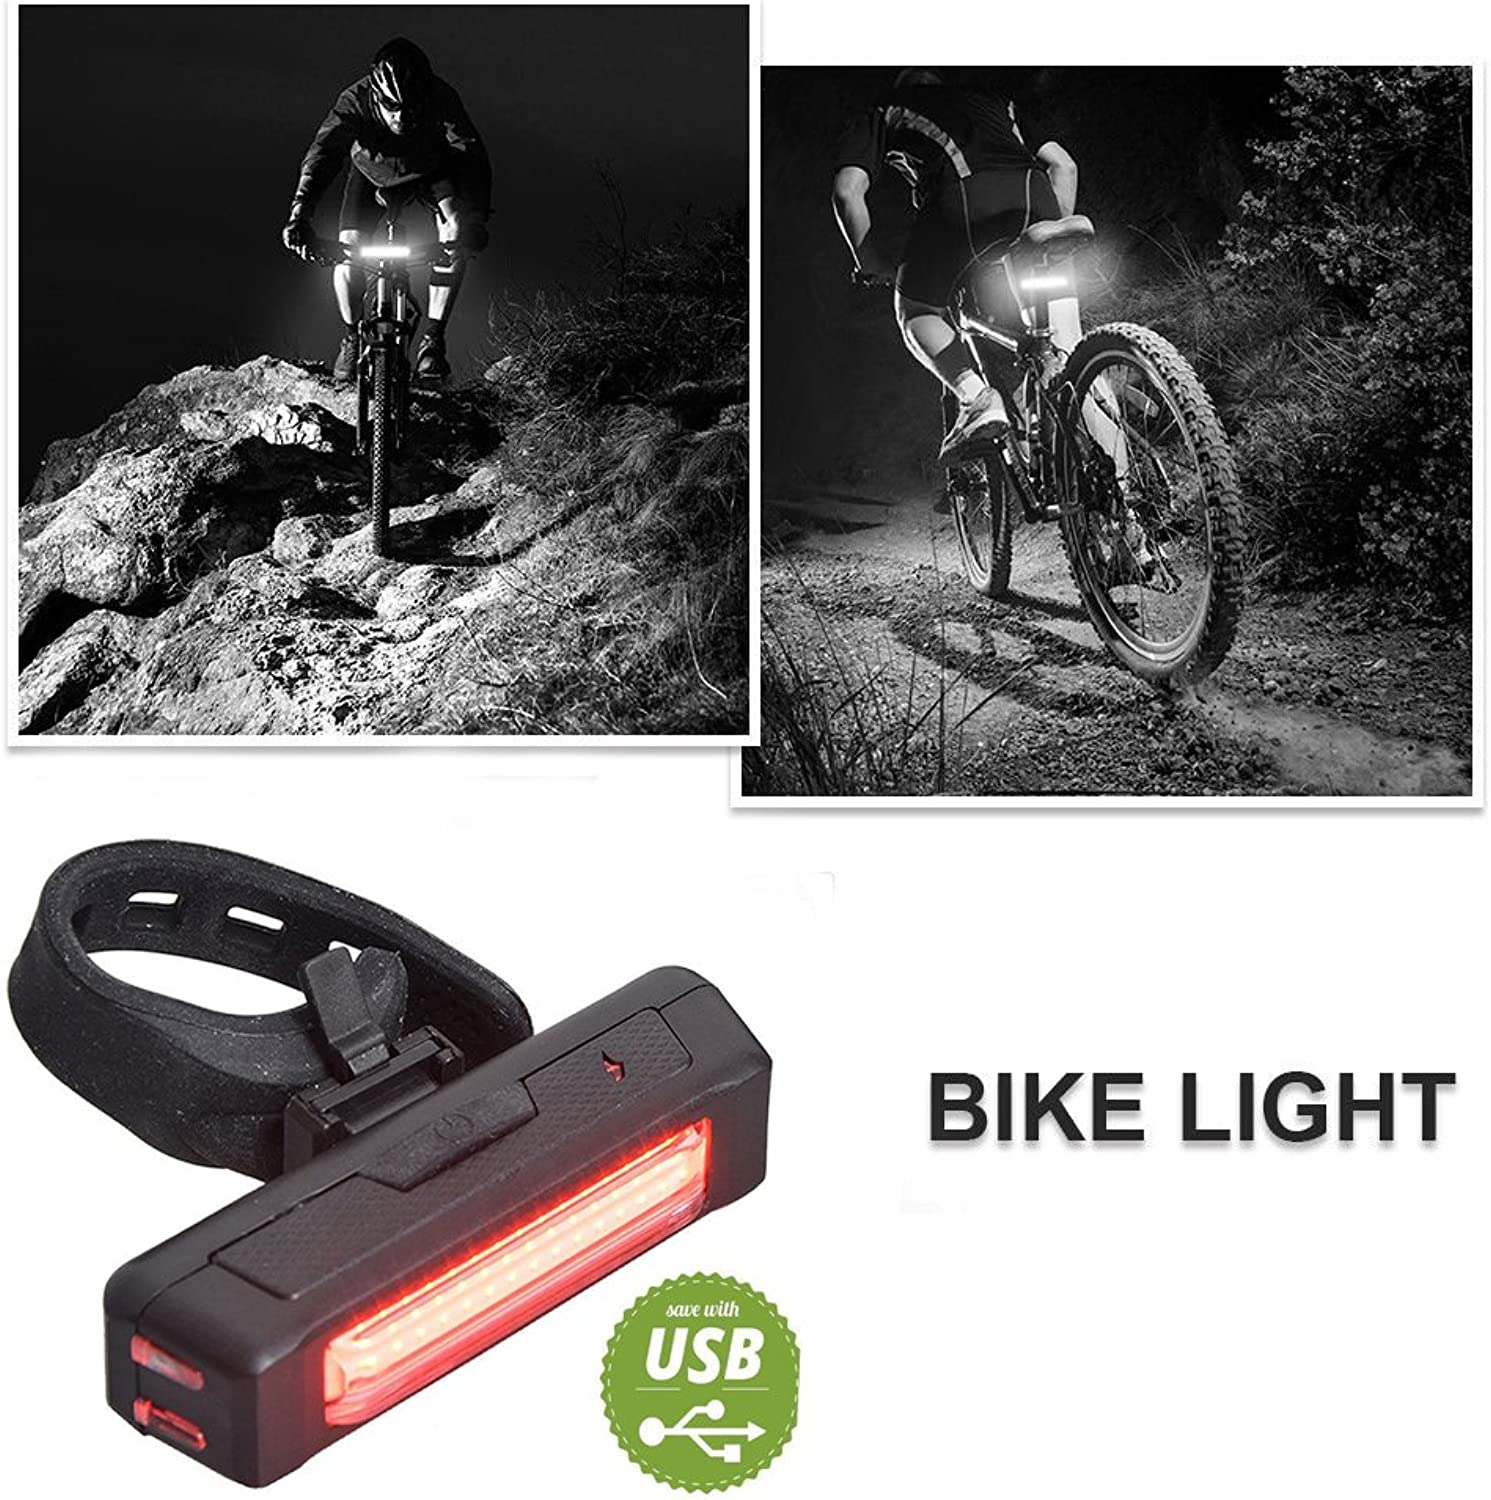 AITOO Bicycle Light Rear Rechargeable  [bluee+Red] Waterproof 6 Modes Bike Light USB Rechargeable LED Bicycle Tail Light Lamp Cycling Warning Rear Tail Light Safety Flashlight Rear Lamp  RED or bluee